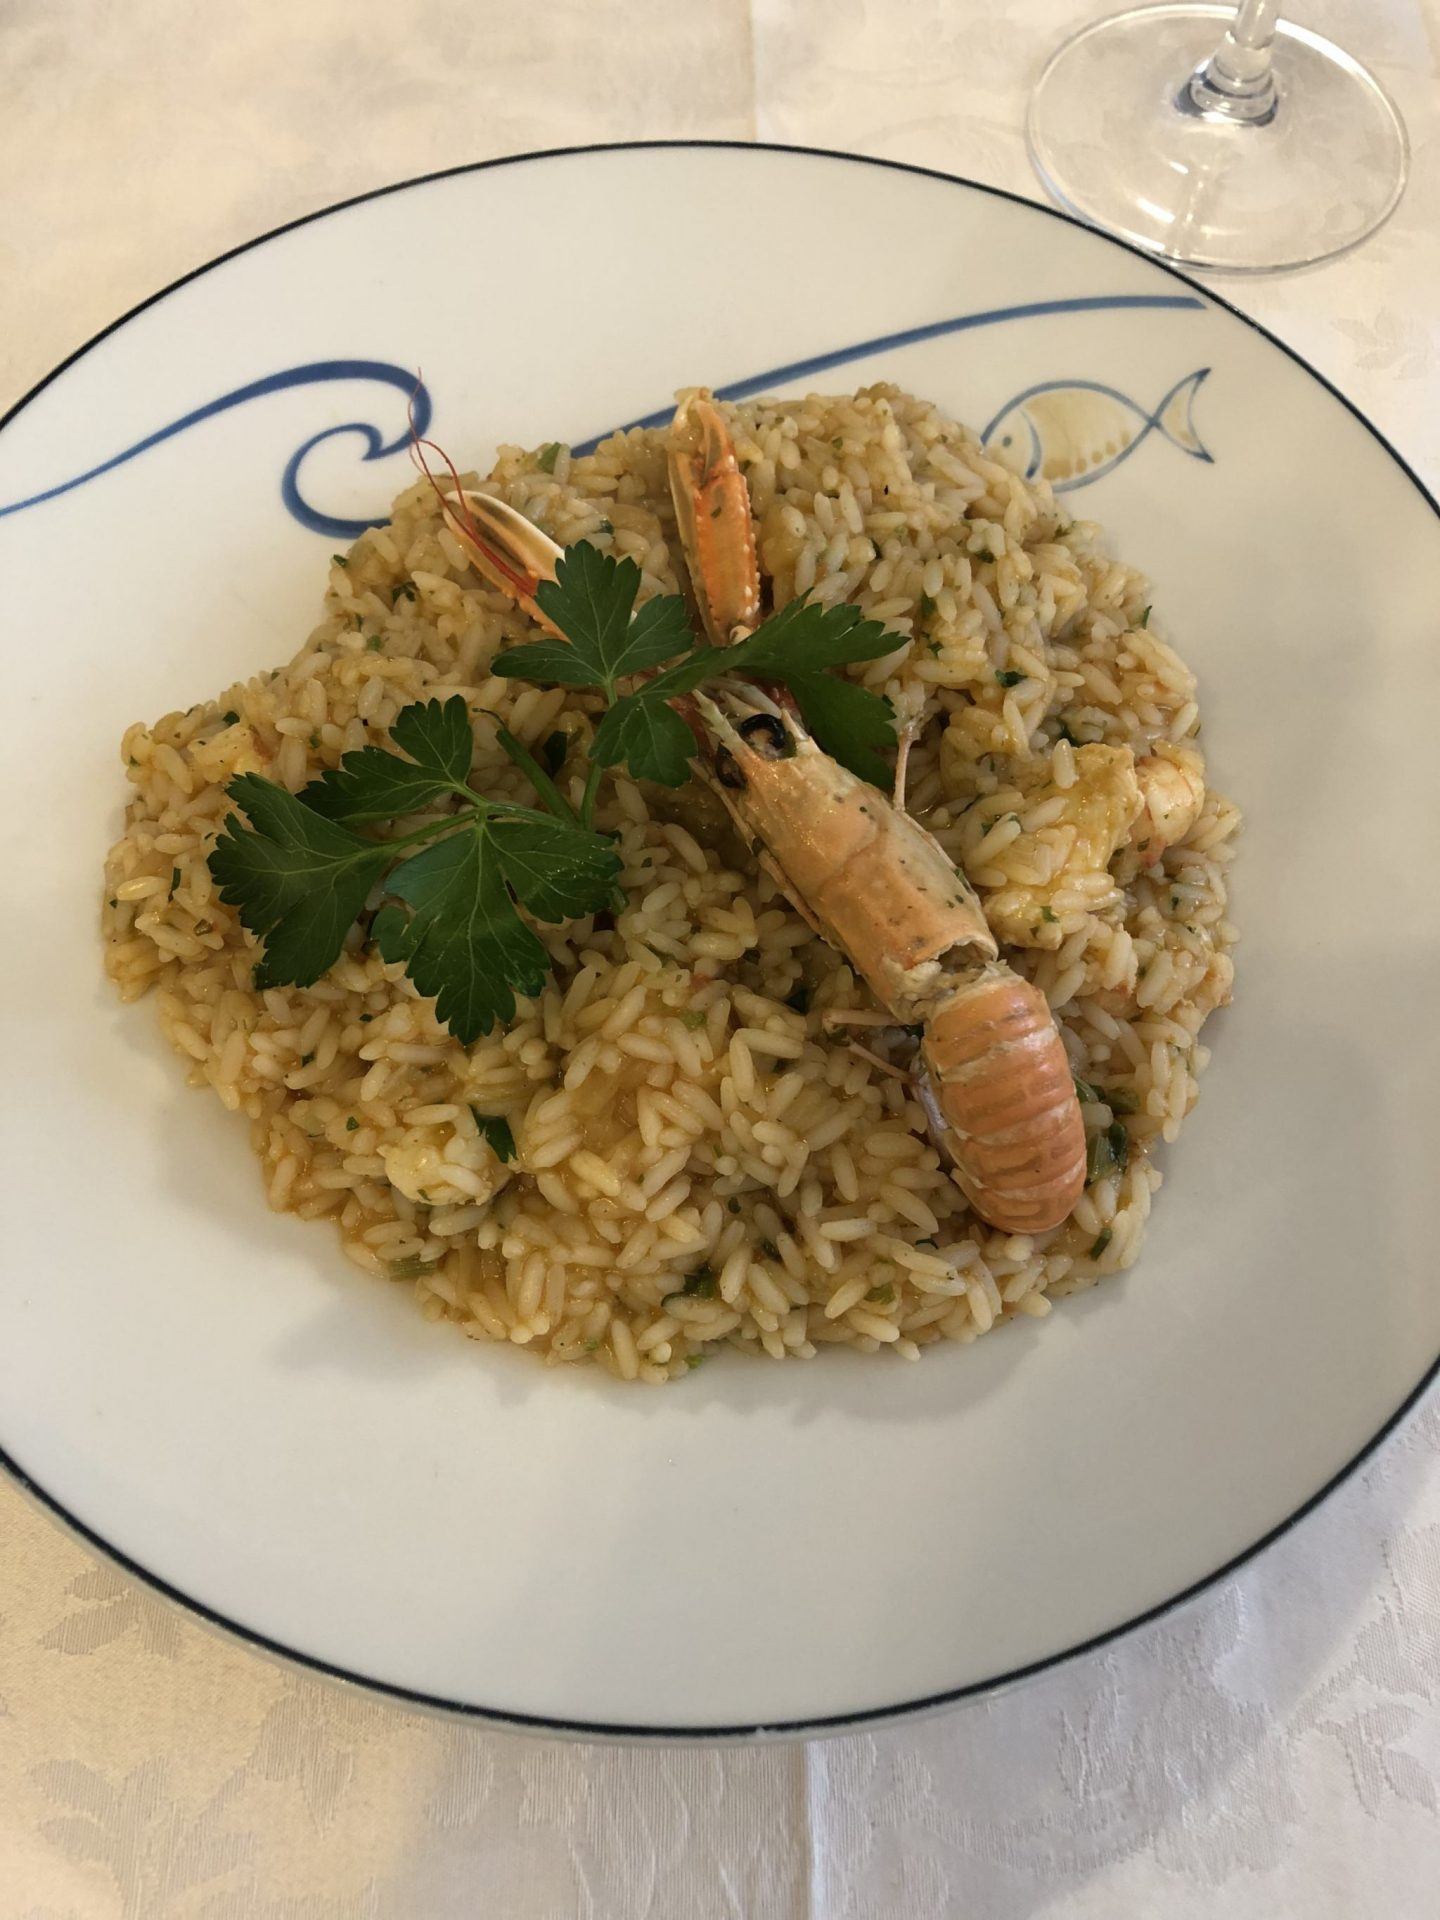 Risotto served with a whole unshelled shrimp